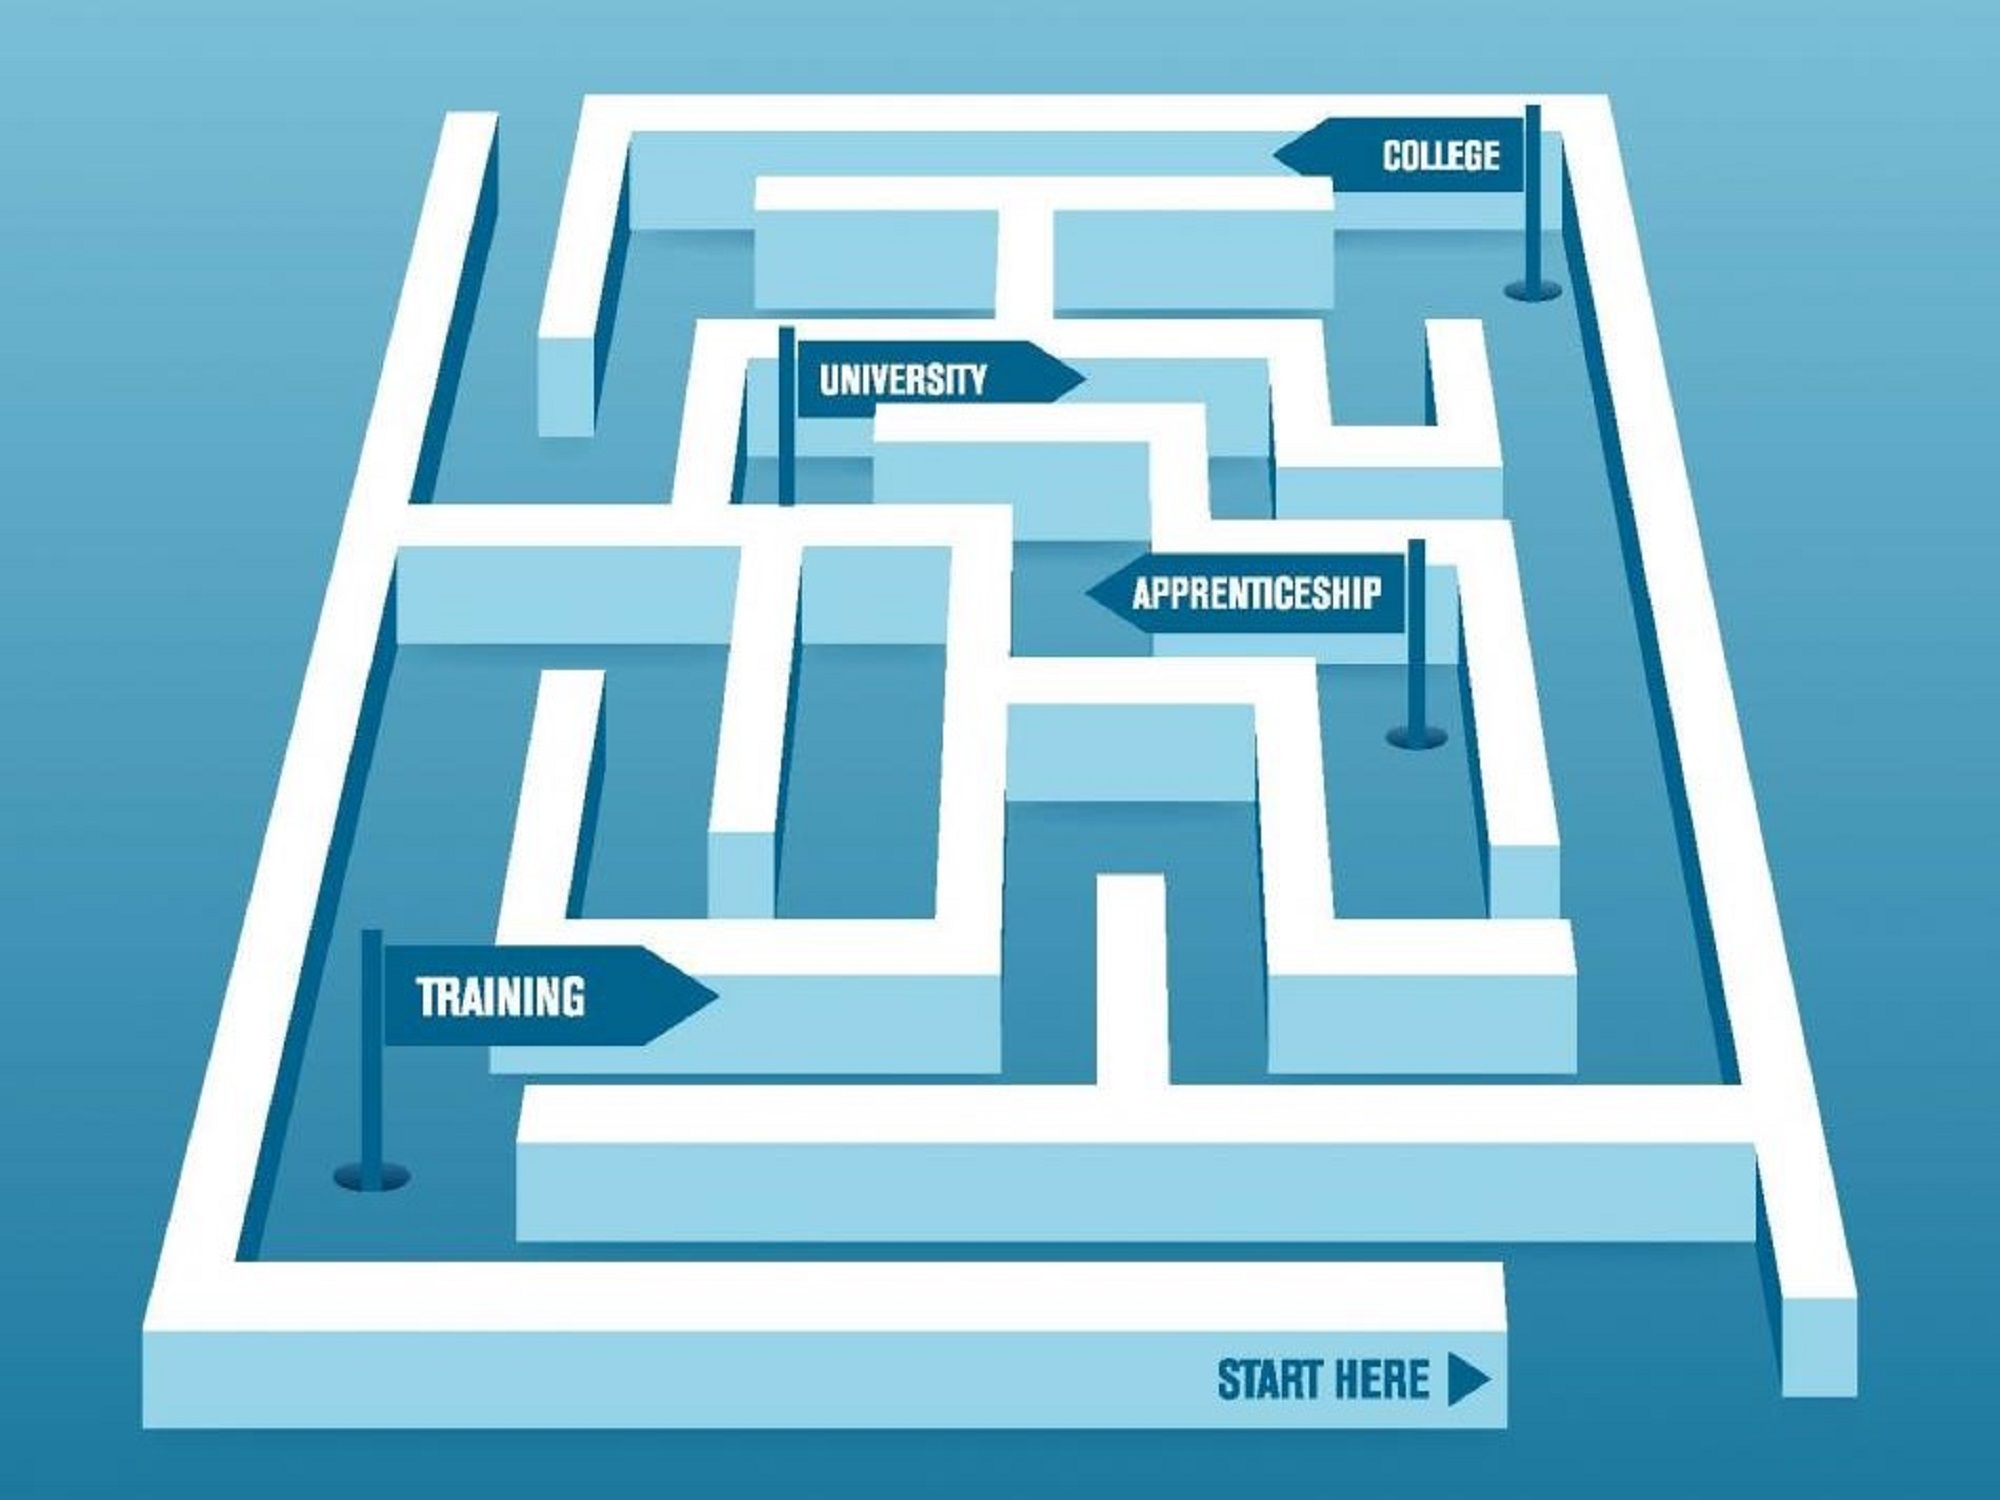 maze with signposts for different career paths